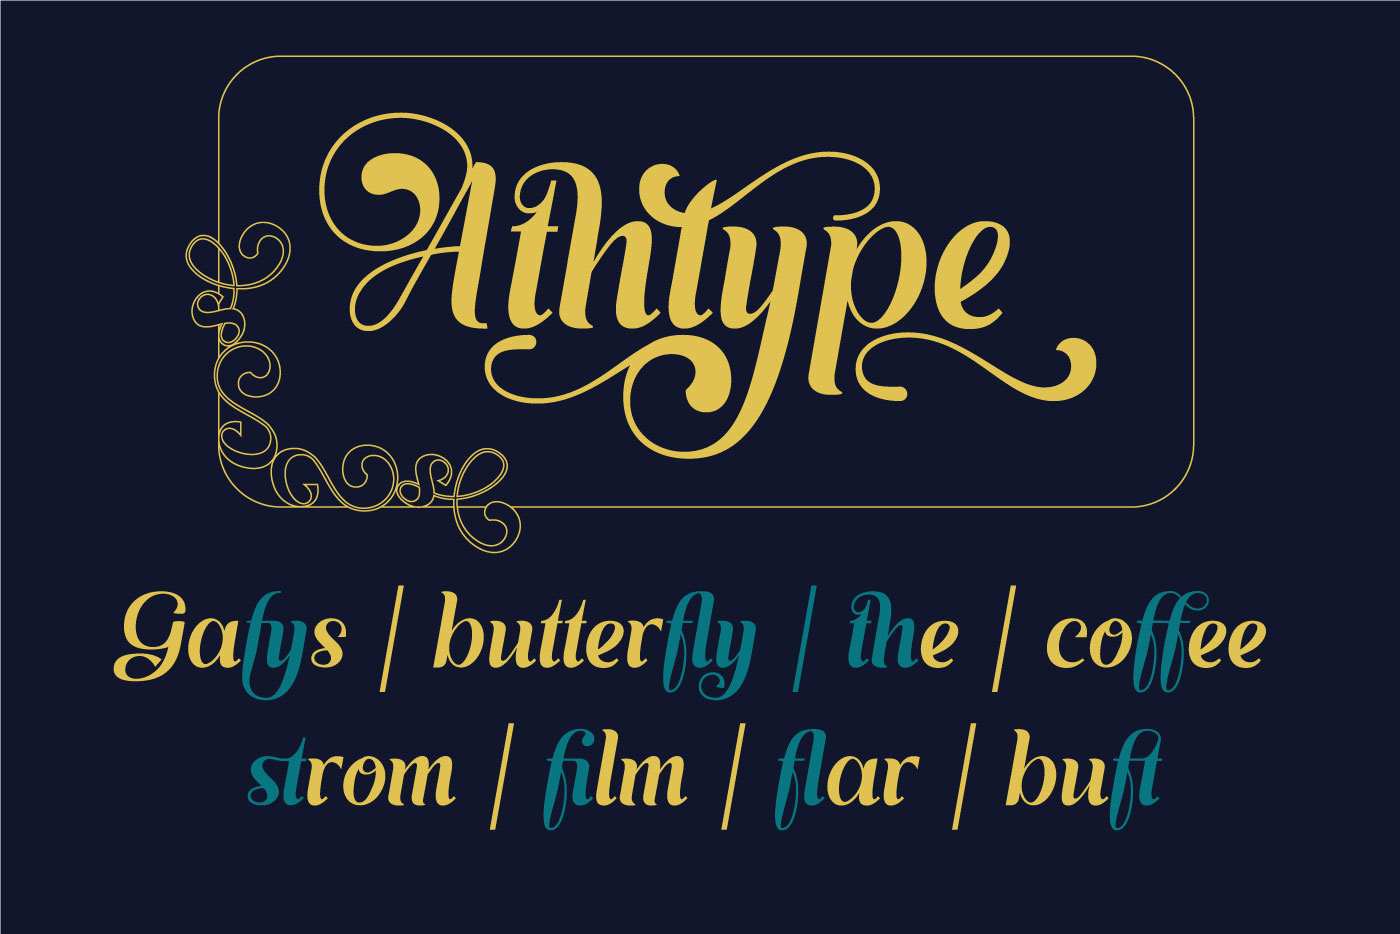 Dark blue background and gold font.